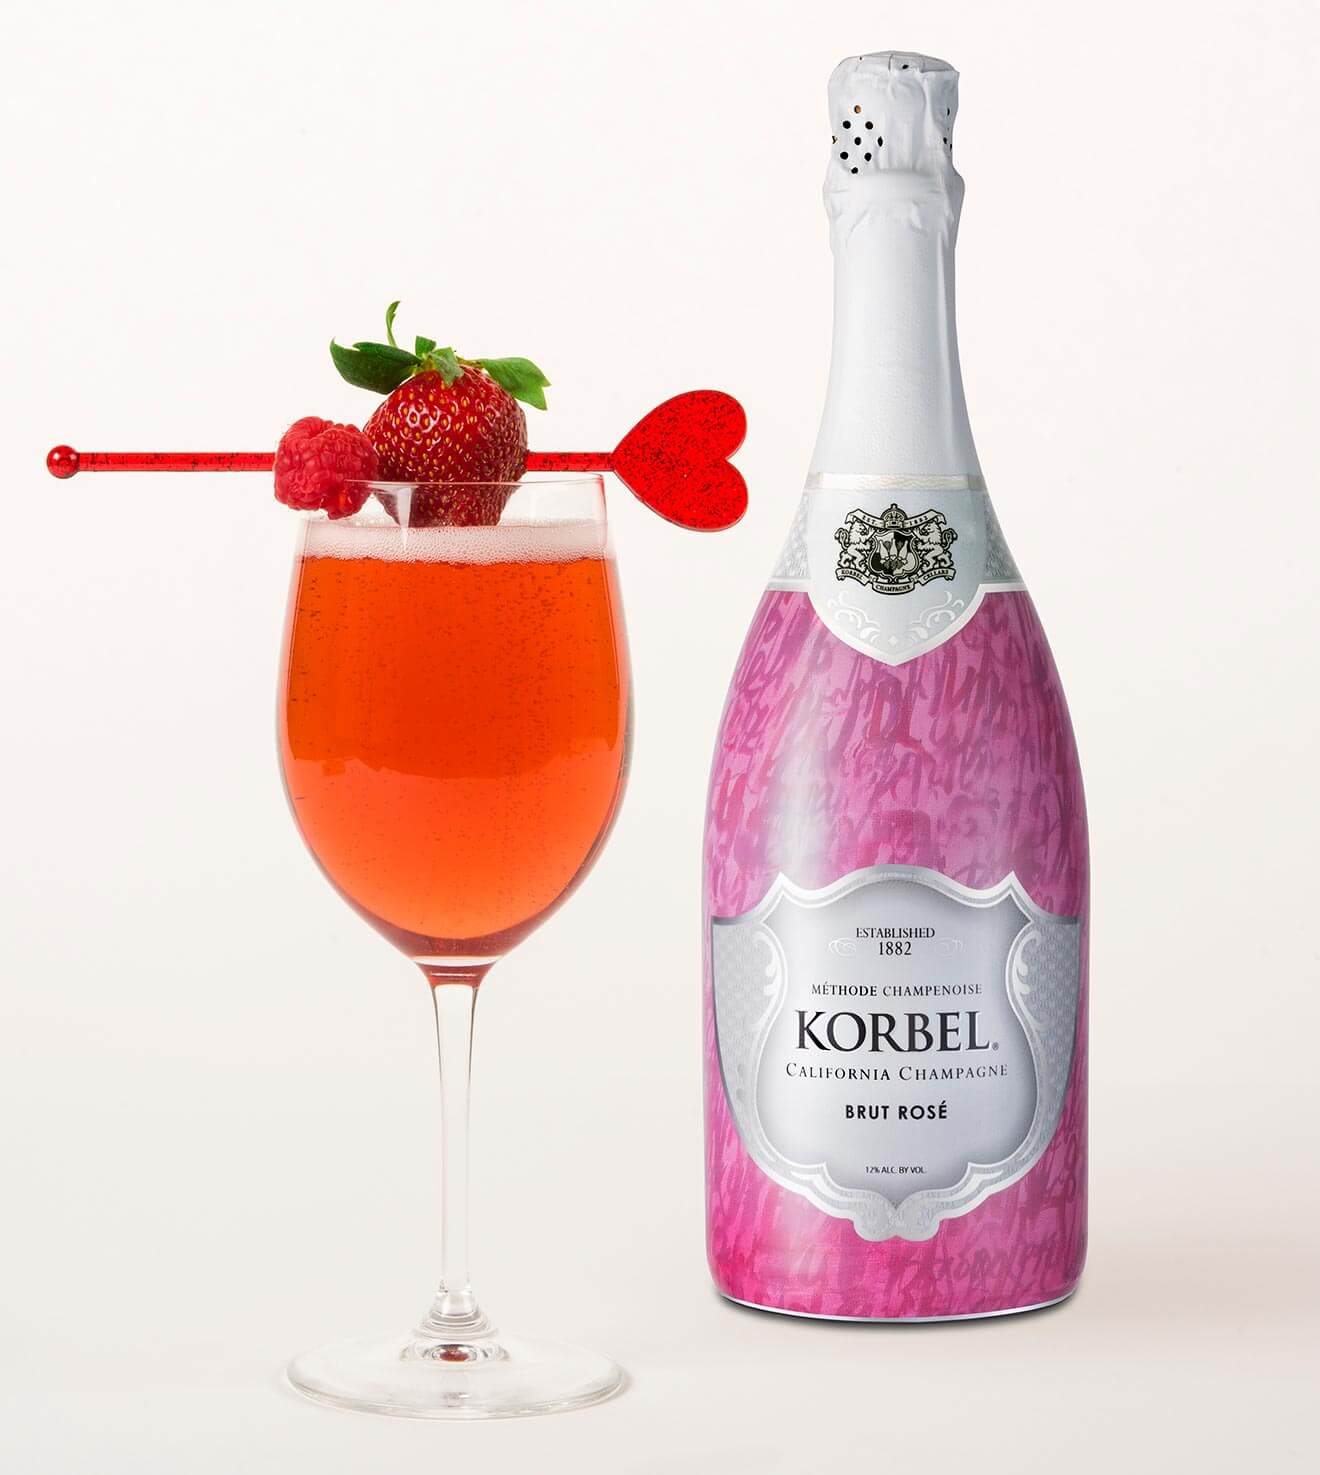 Korbel Ruby Rose, cocktail and bottle on white